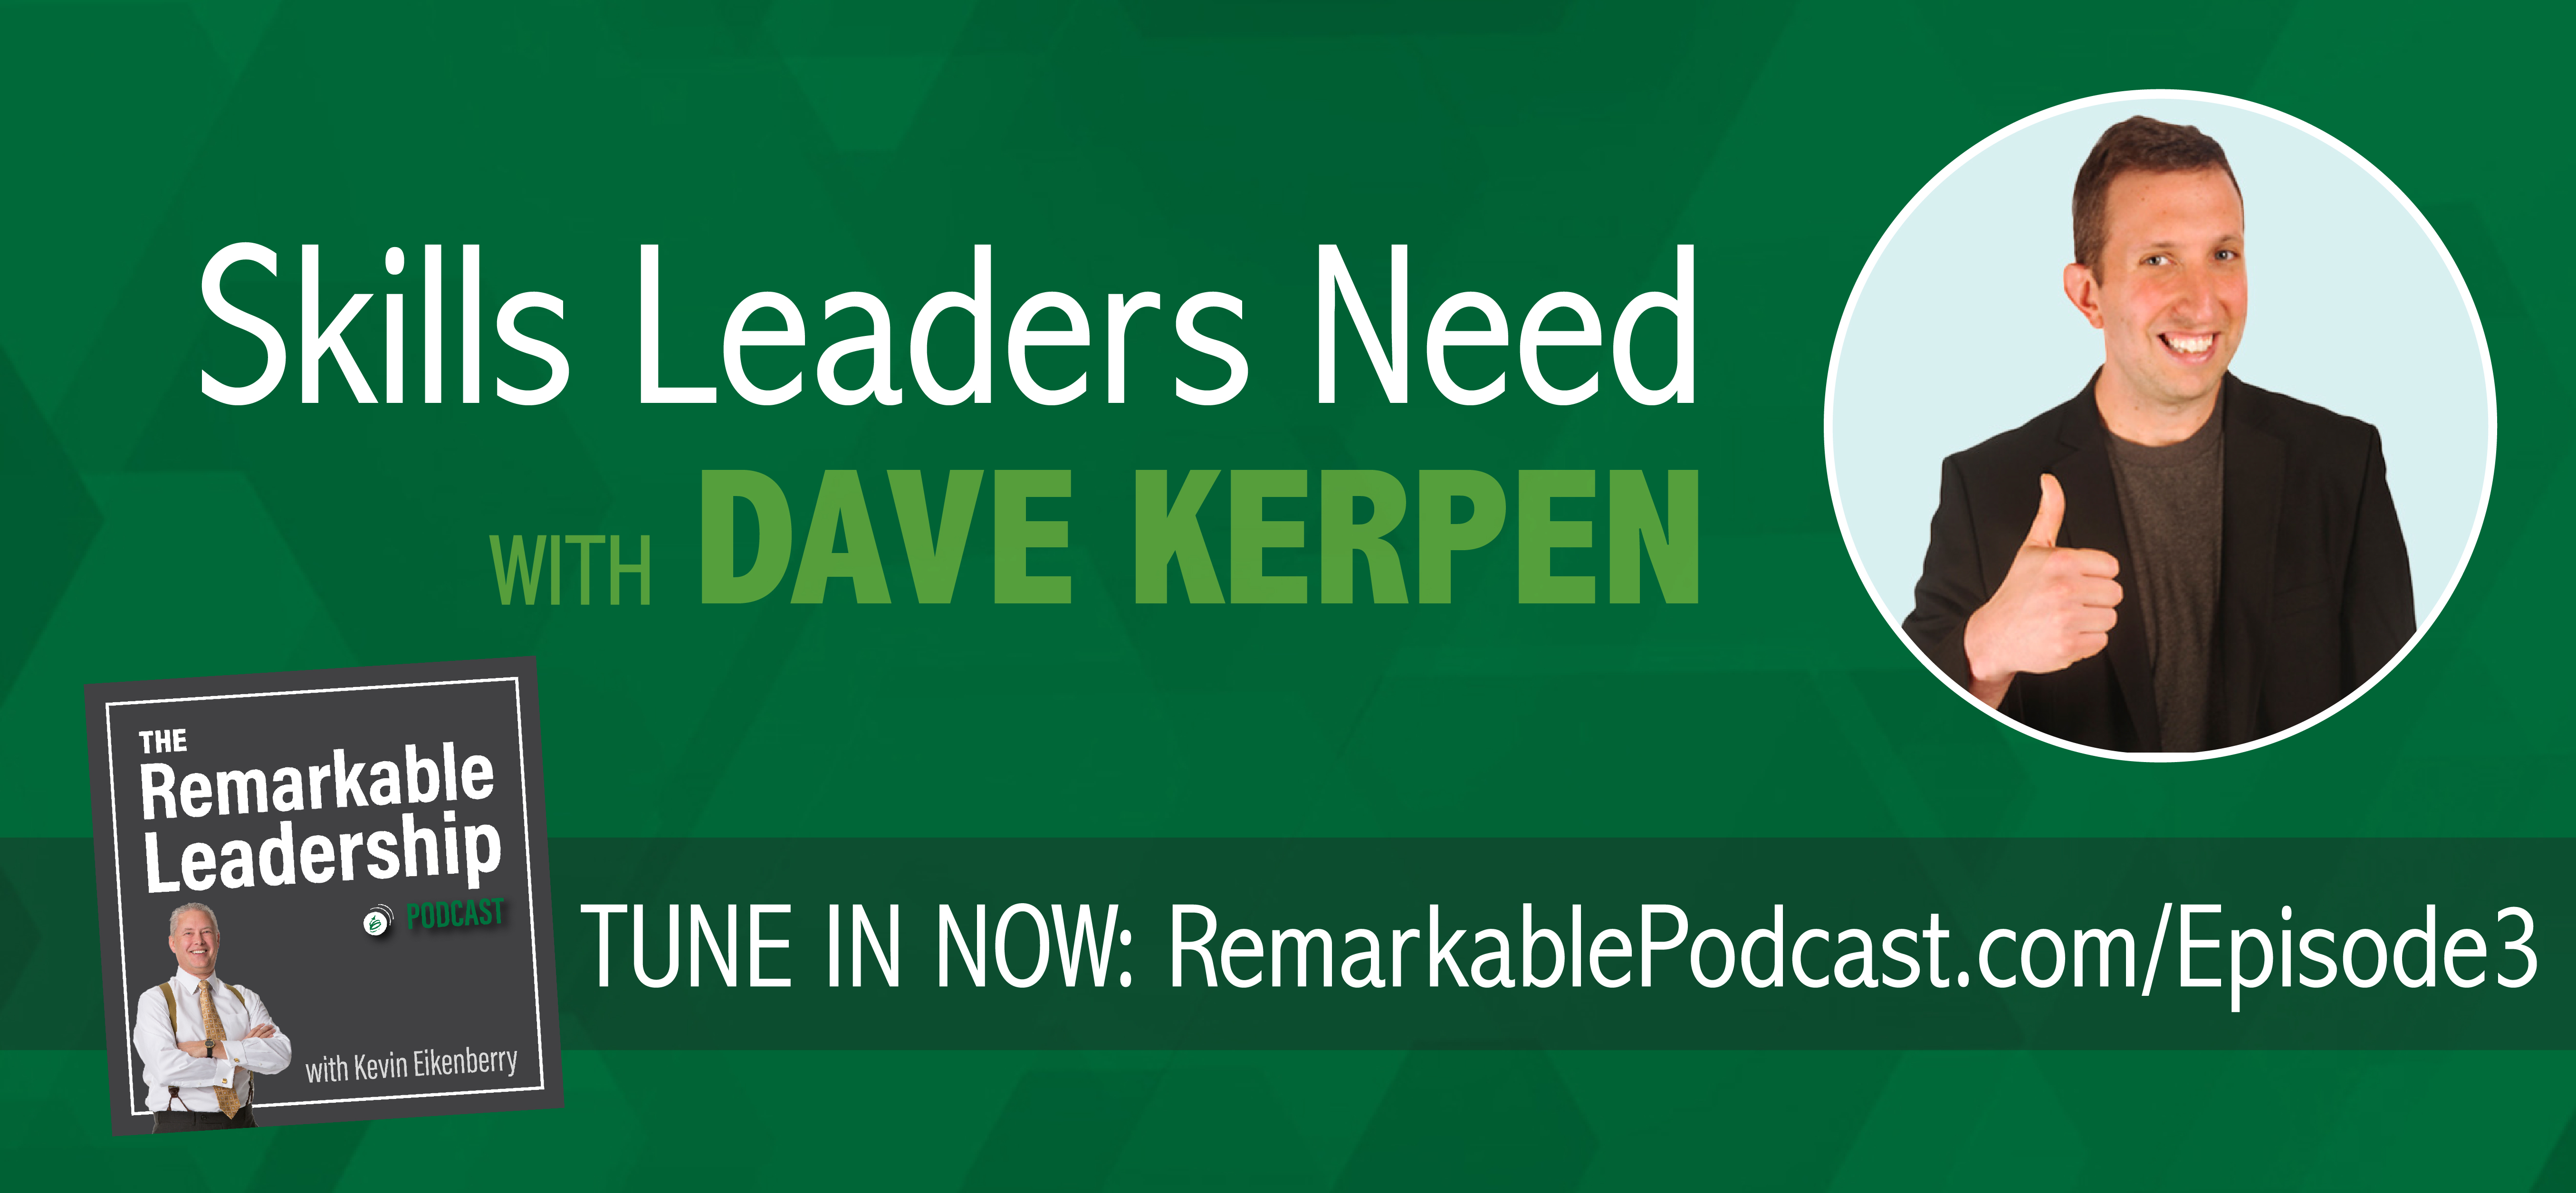 The Remarkable Leadership Podcast - Episode 3: Skills Leaders Need with Dave Kerpen